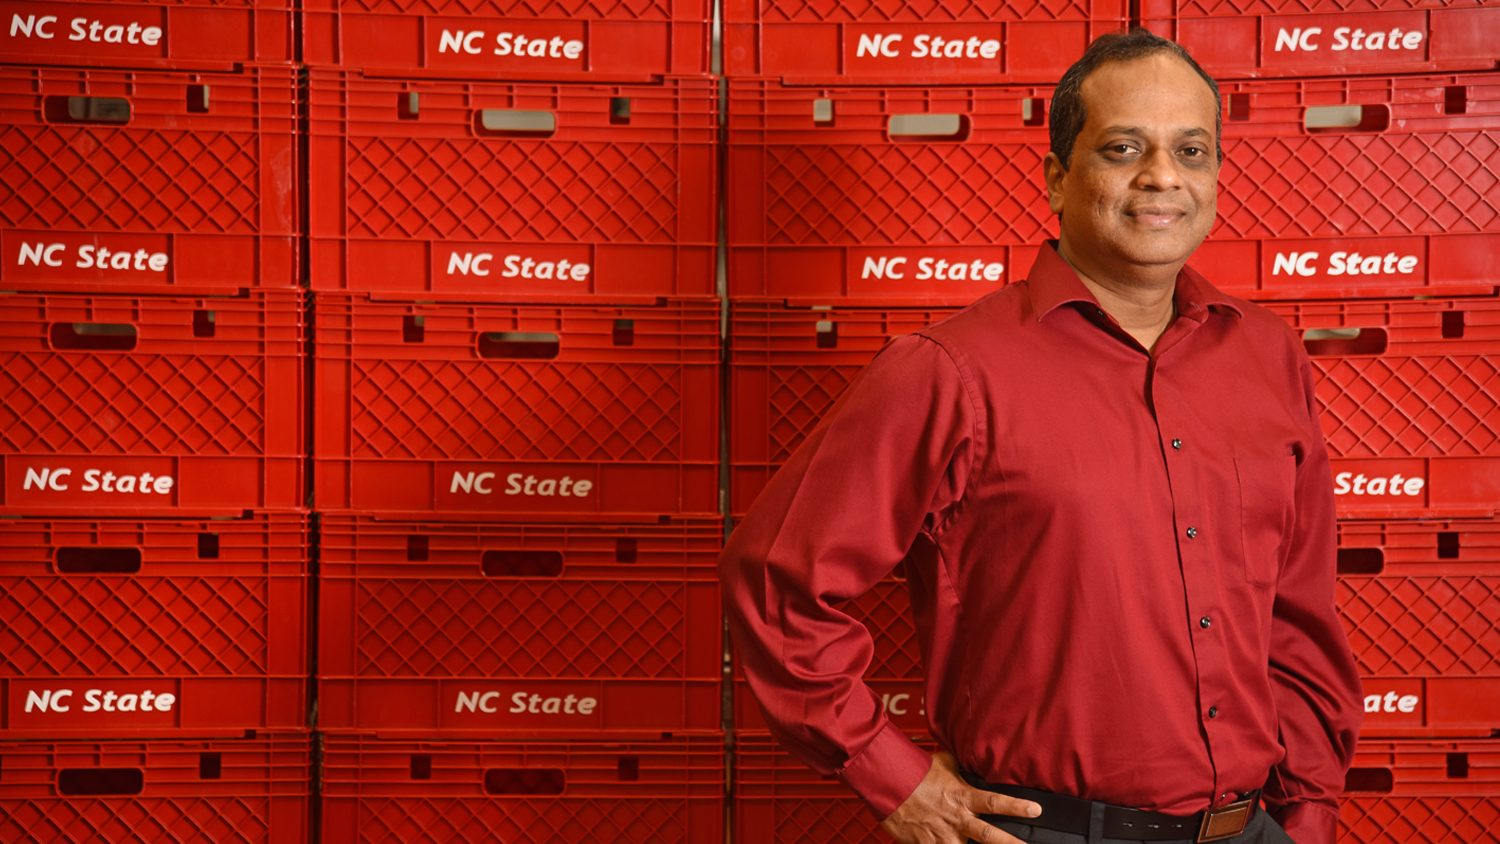 FBNS Department Head K.P. Sandeep standing in front of NC State milk crates